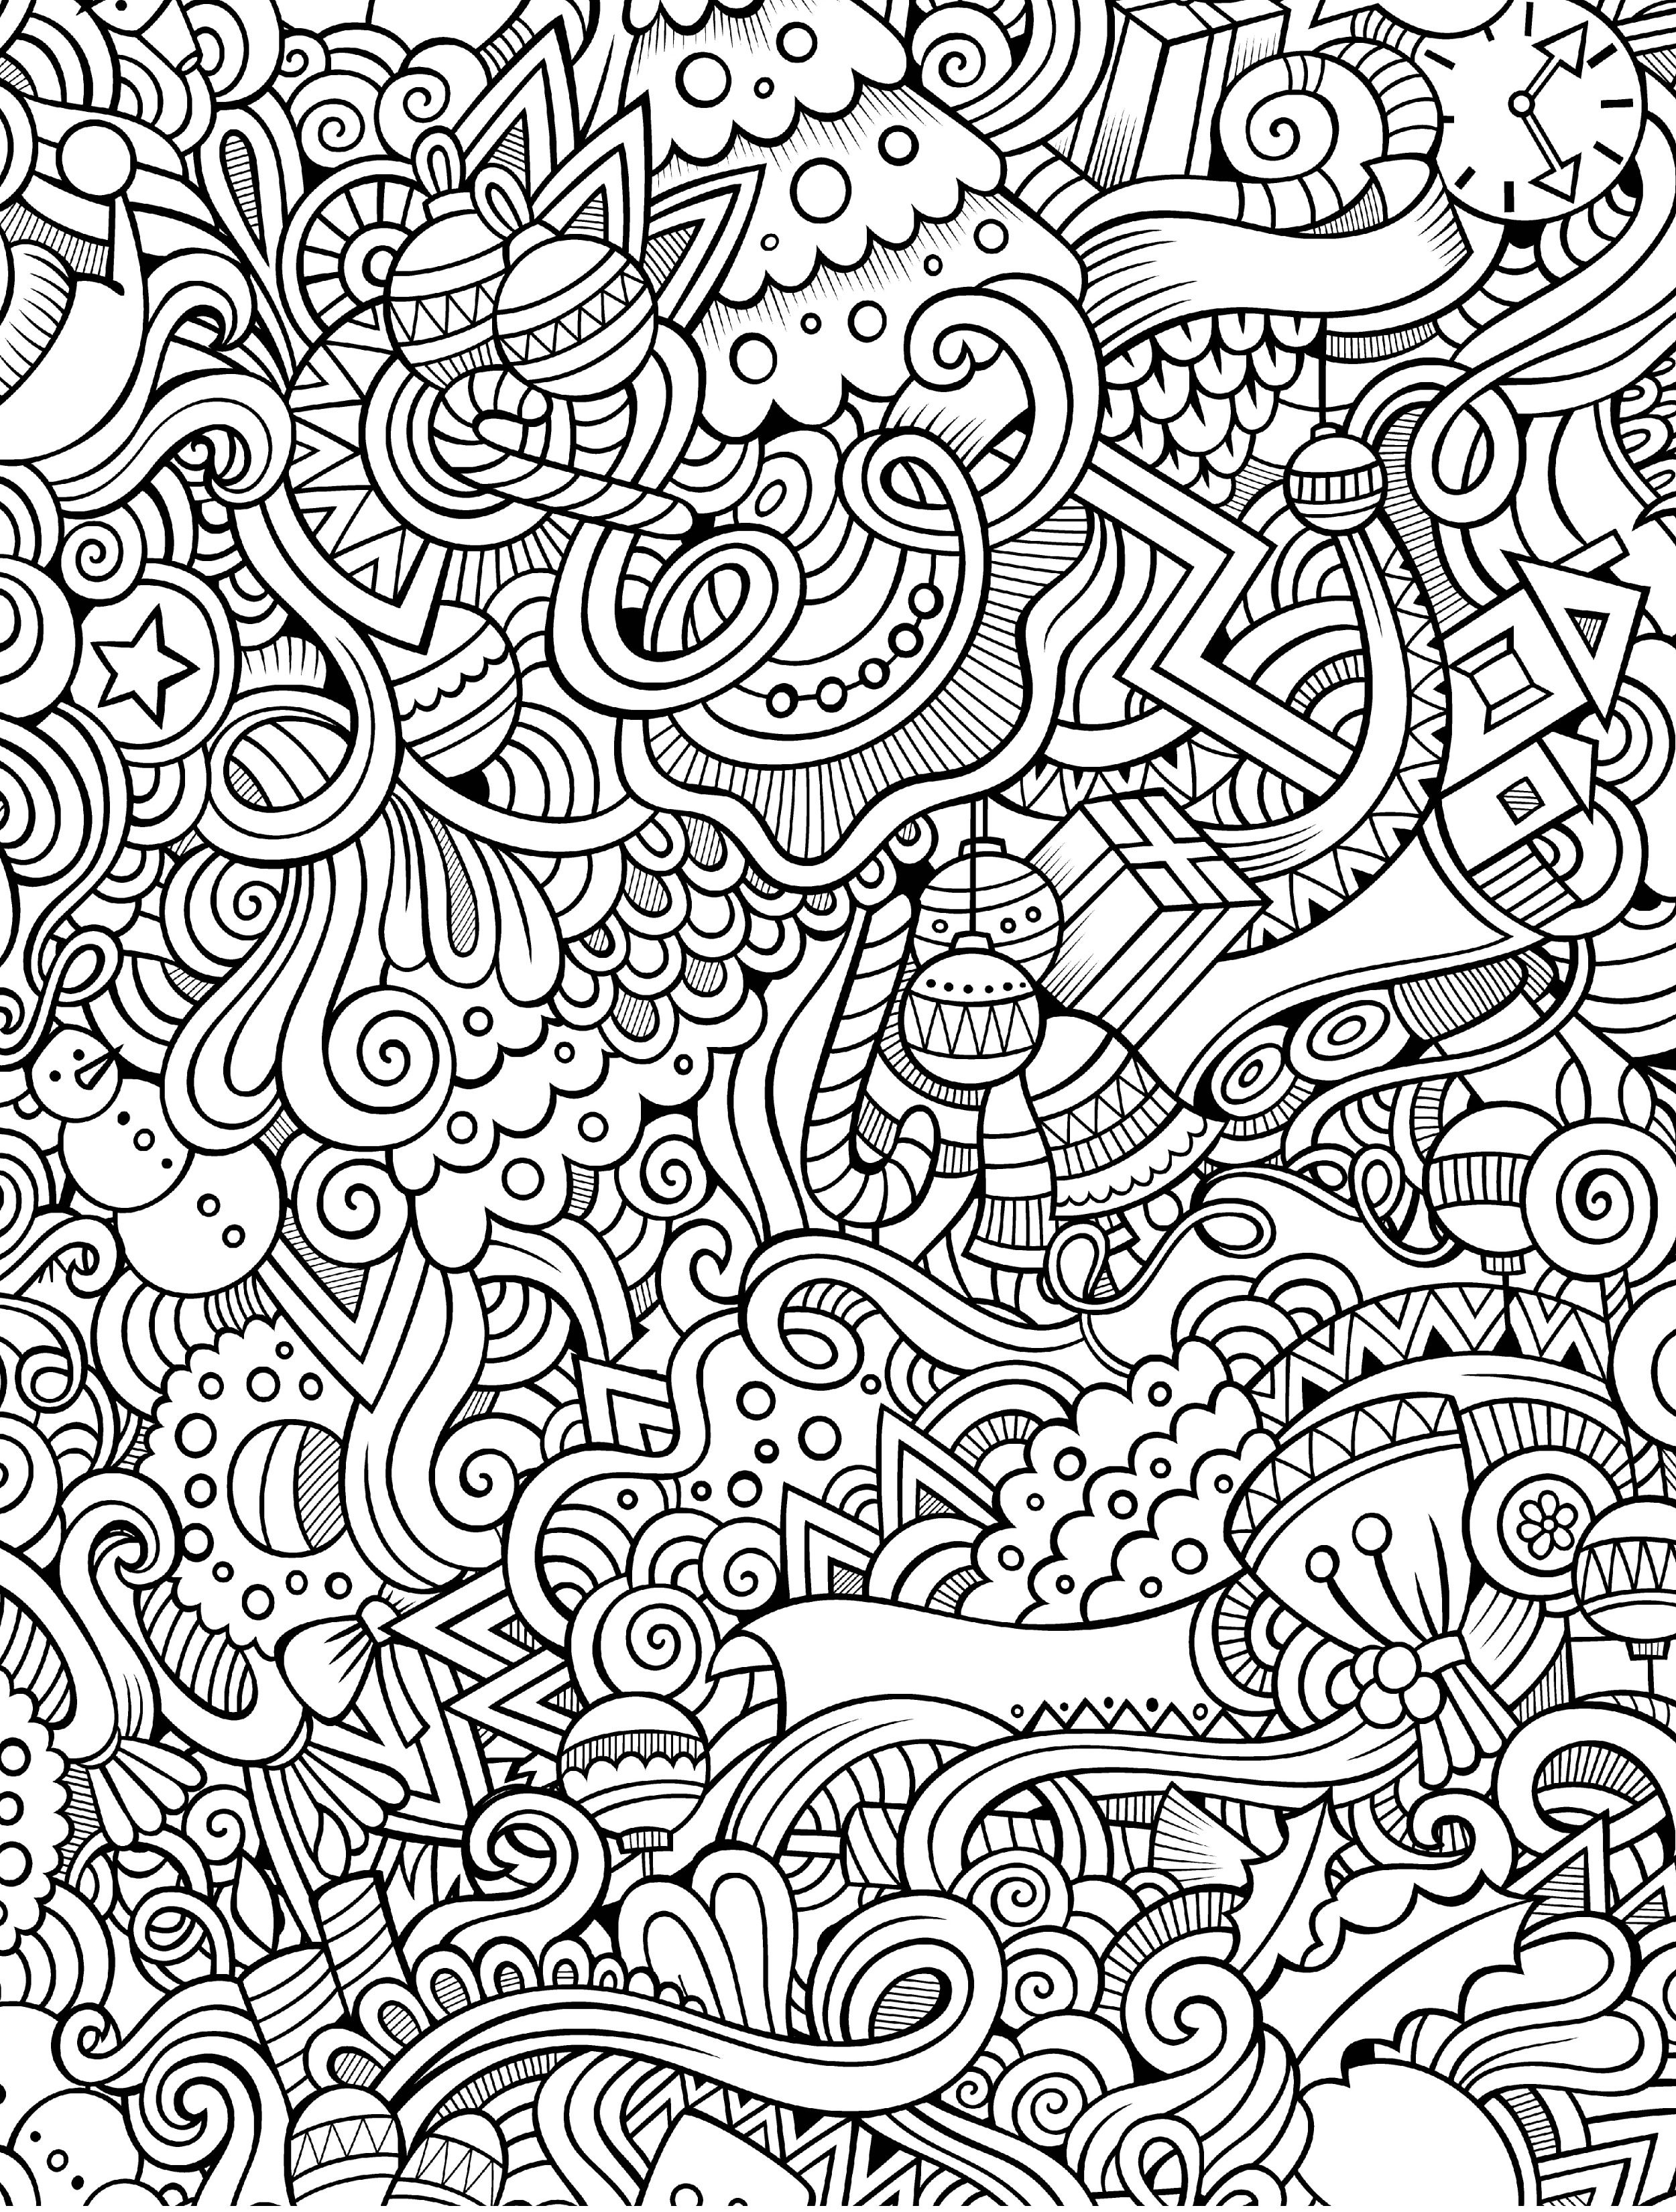 10 Free Printable Holiday Adult Coloring Pages Heart